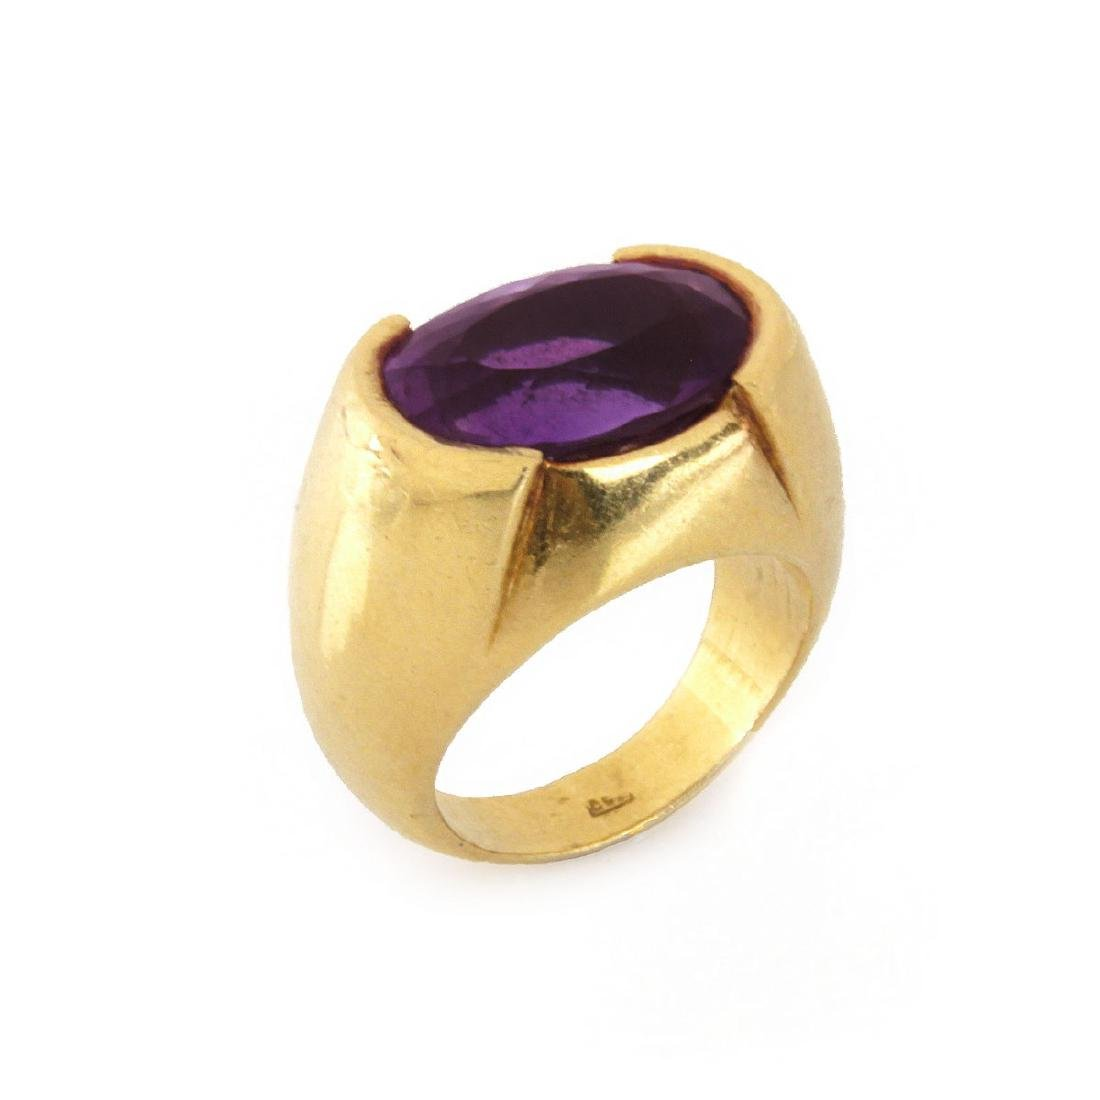 Vintage Amethyst and 18K Ring